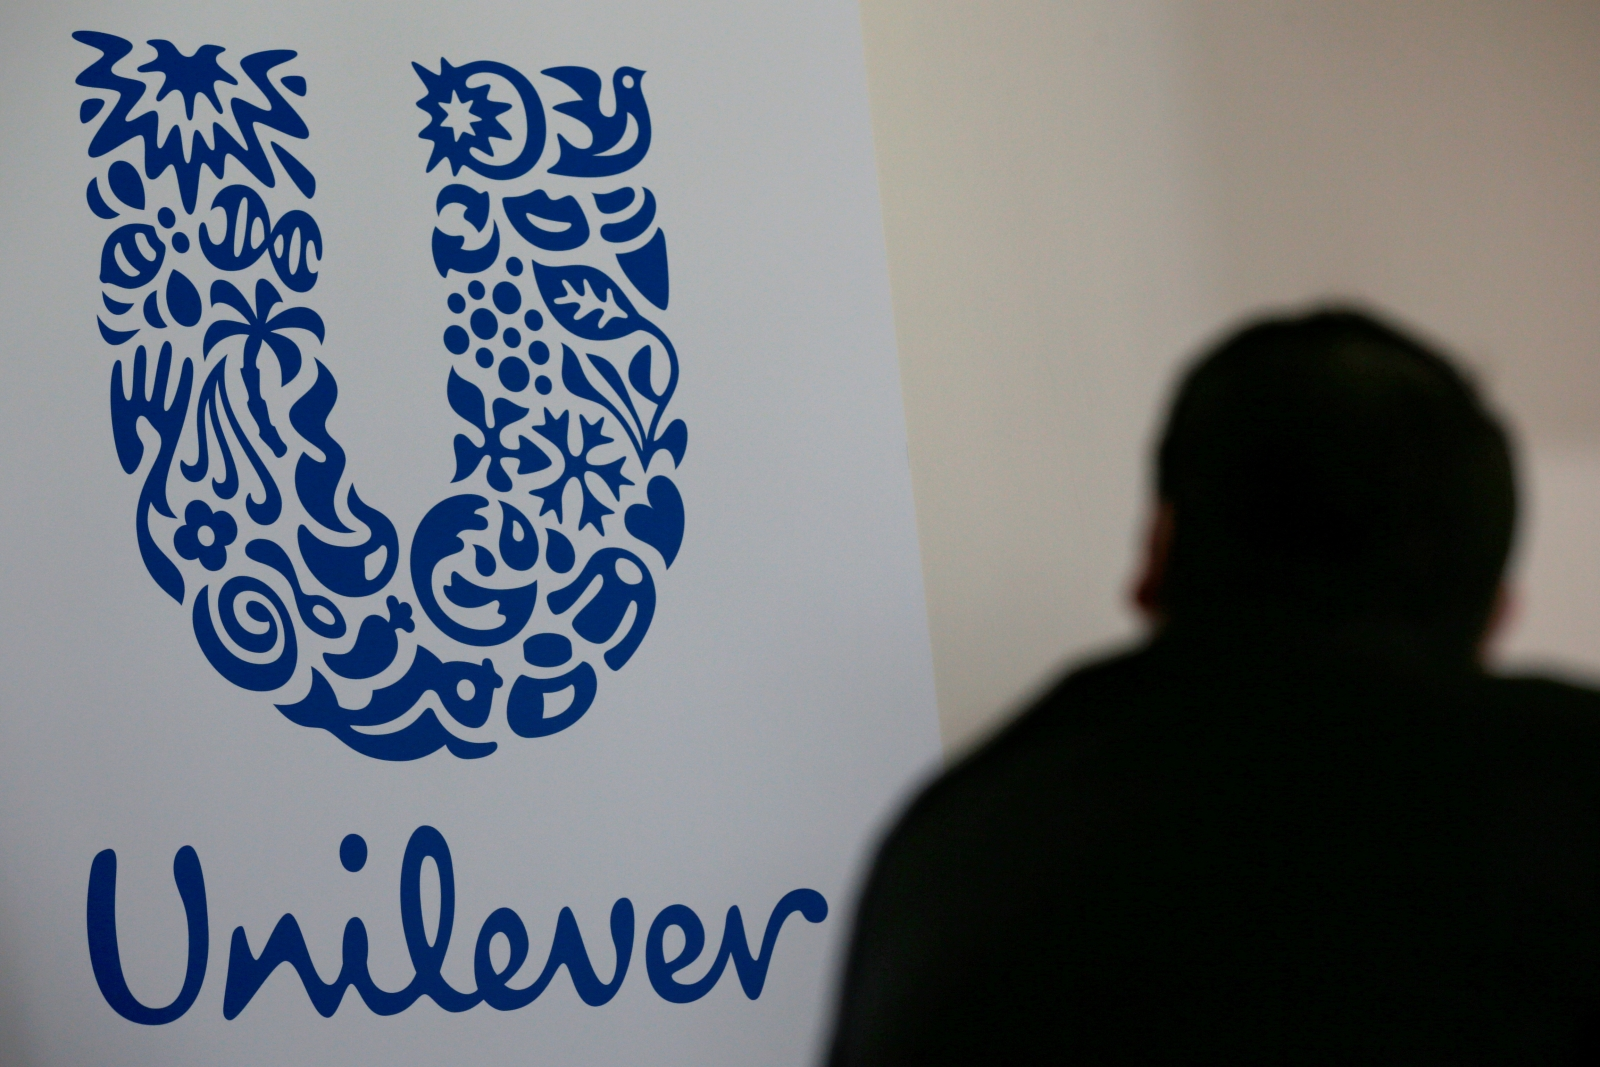 Unilever to acquire American men's razor company Dollar Shave Club for $1bn